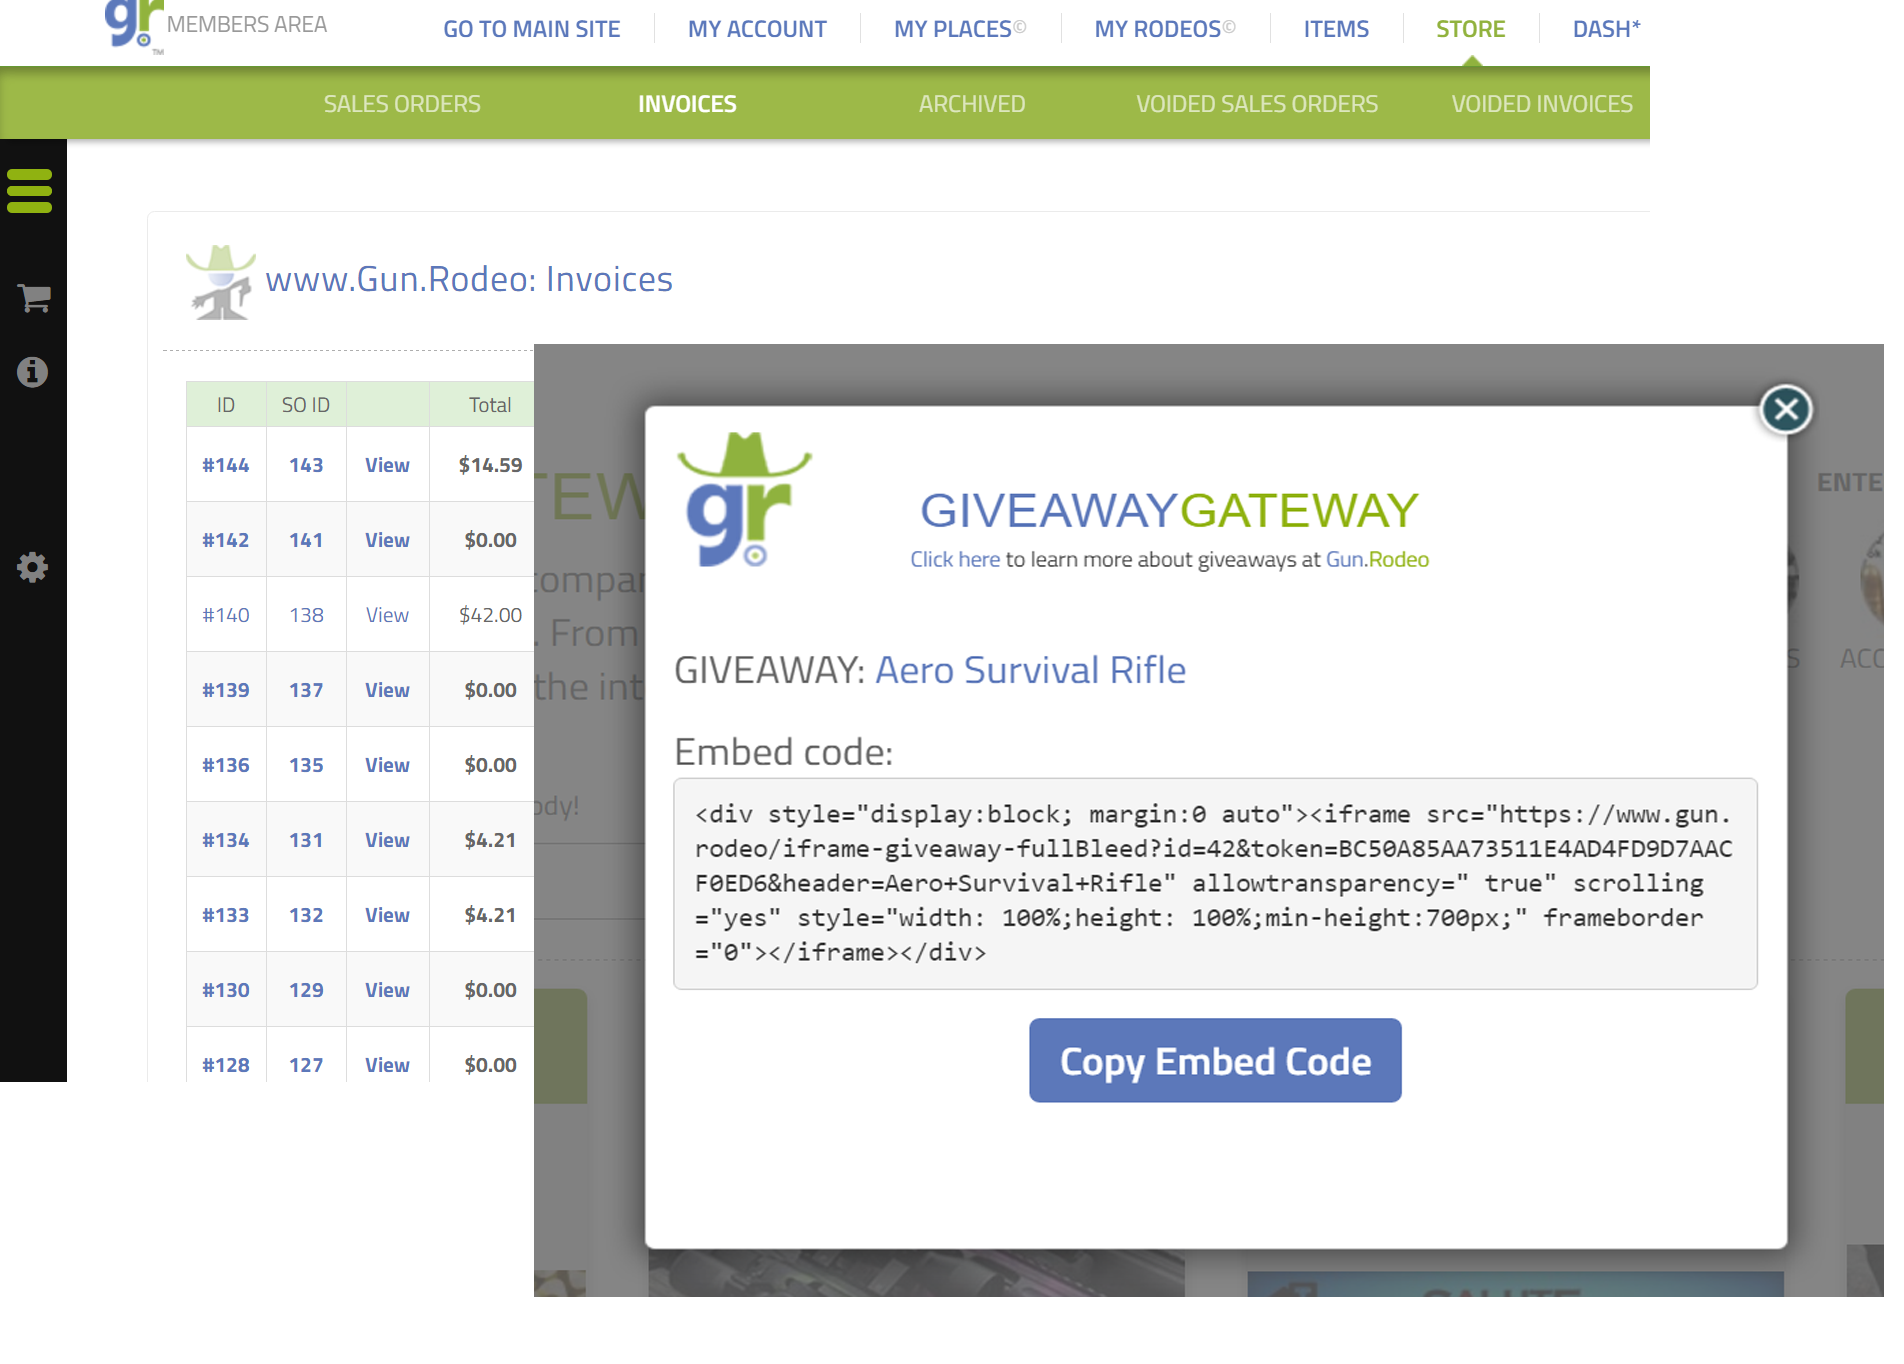 Gun.Rodeo's Giveaway Gateway Platform: Embed your giveaway into the Gun.Rodeo display network